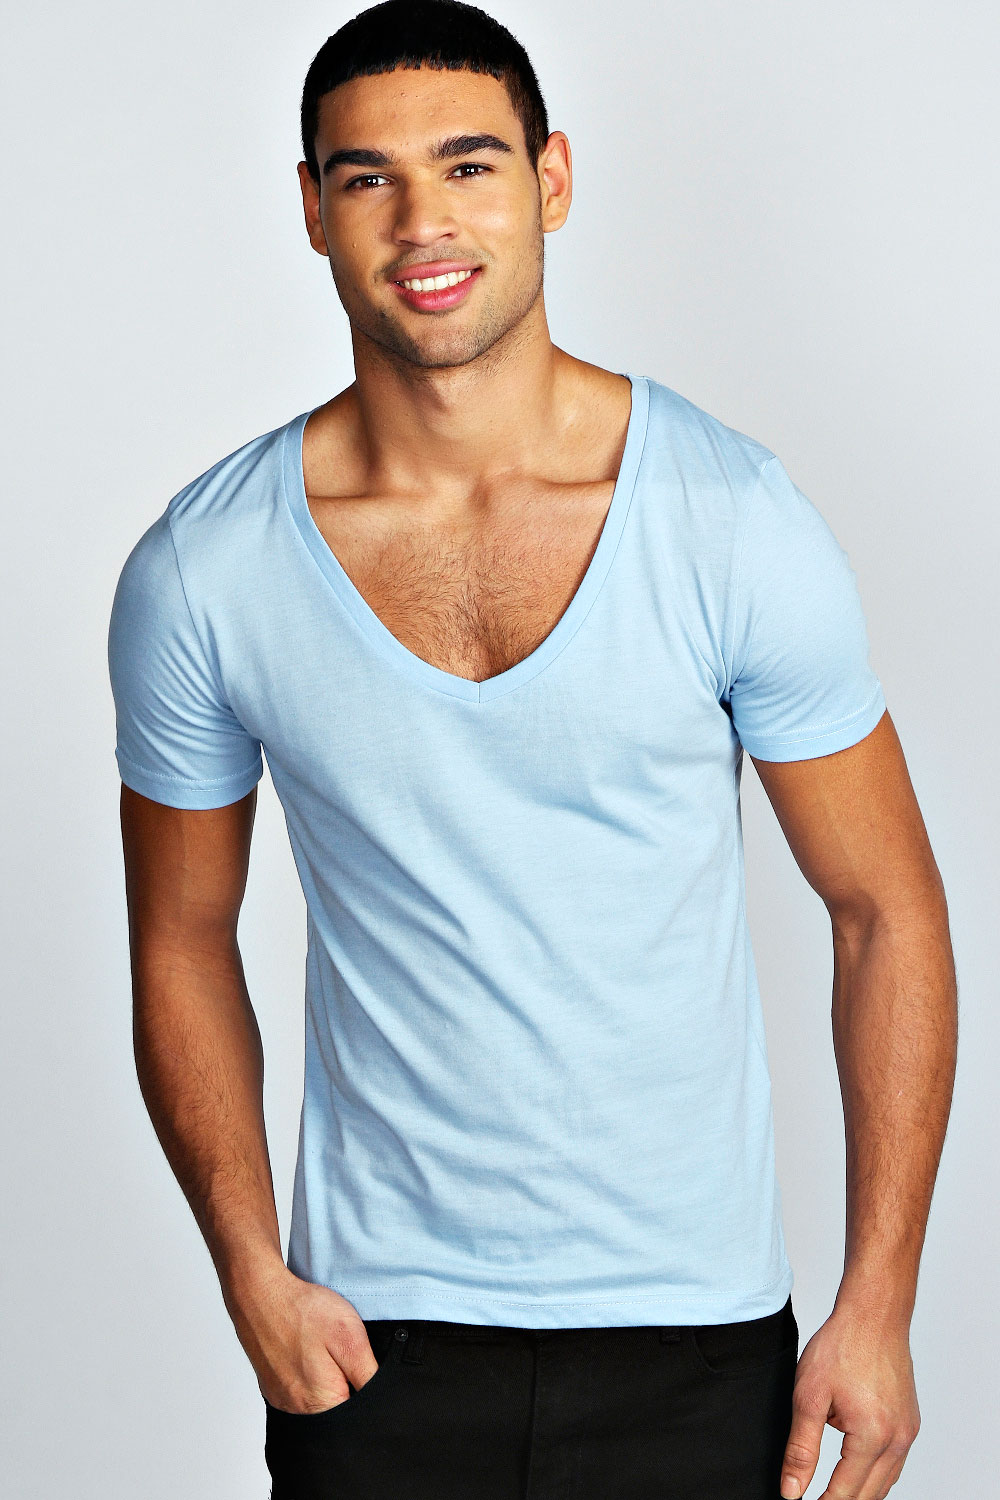 Best V Neck T-Shirts For Men Who Want Comfort And Style V neck t-shirts offer unmatched sophistication and fashionable comfort for men. Most men's apparel tends go in and out of style over the years, but the V-neck t-shirt has always been a timeless classic.